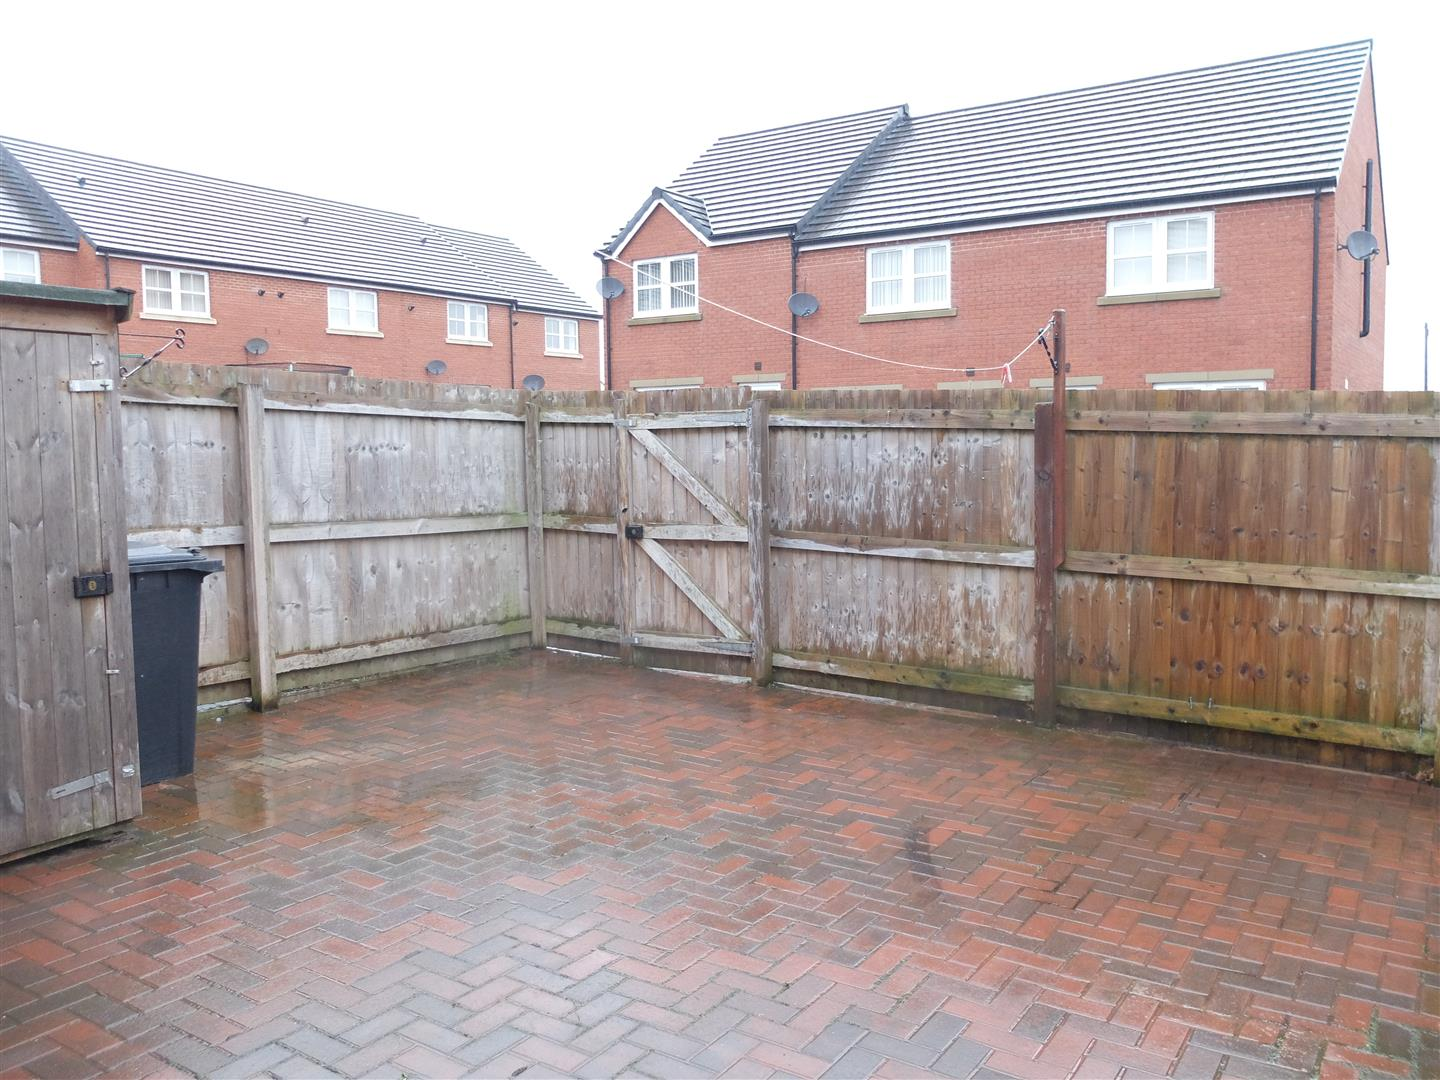 2 Bedrooms House - Semi-Detached On Sale 132 Levens Drive Carlisle 89,950